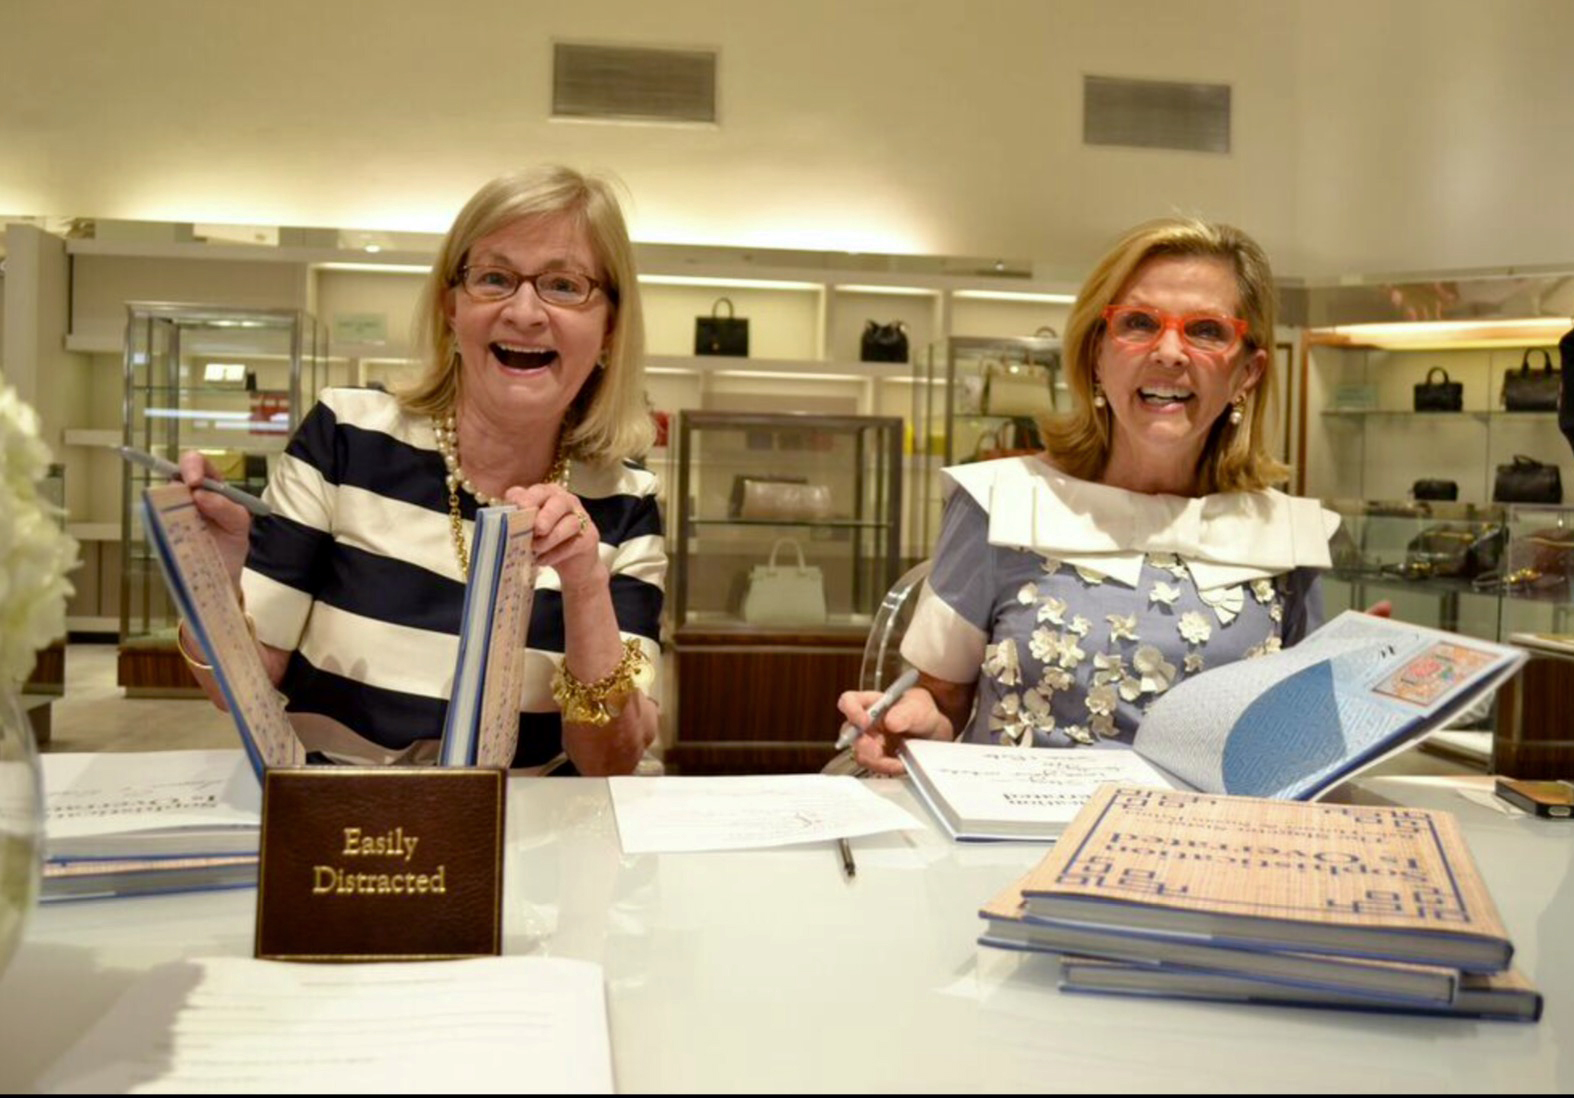 Babs (left) and Susan easily distracted while signing books!